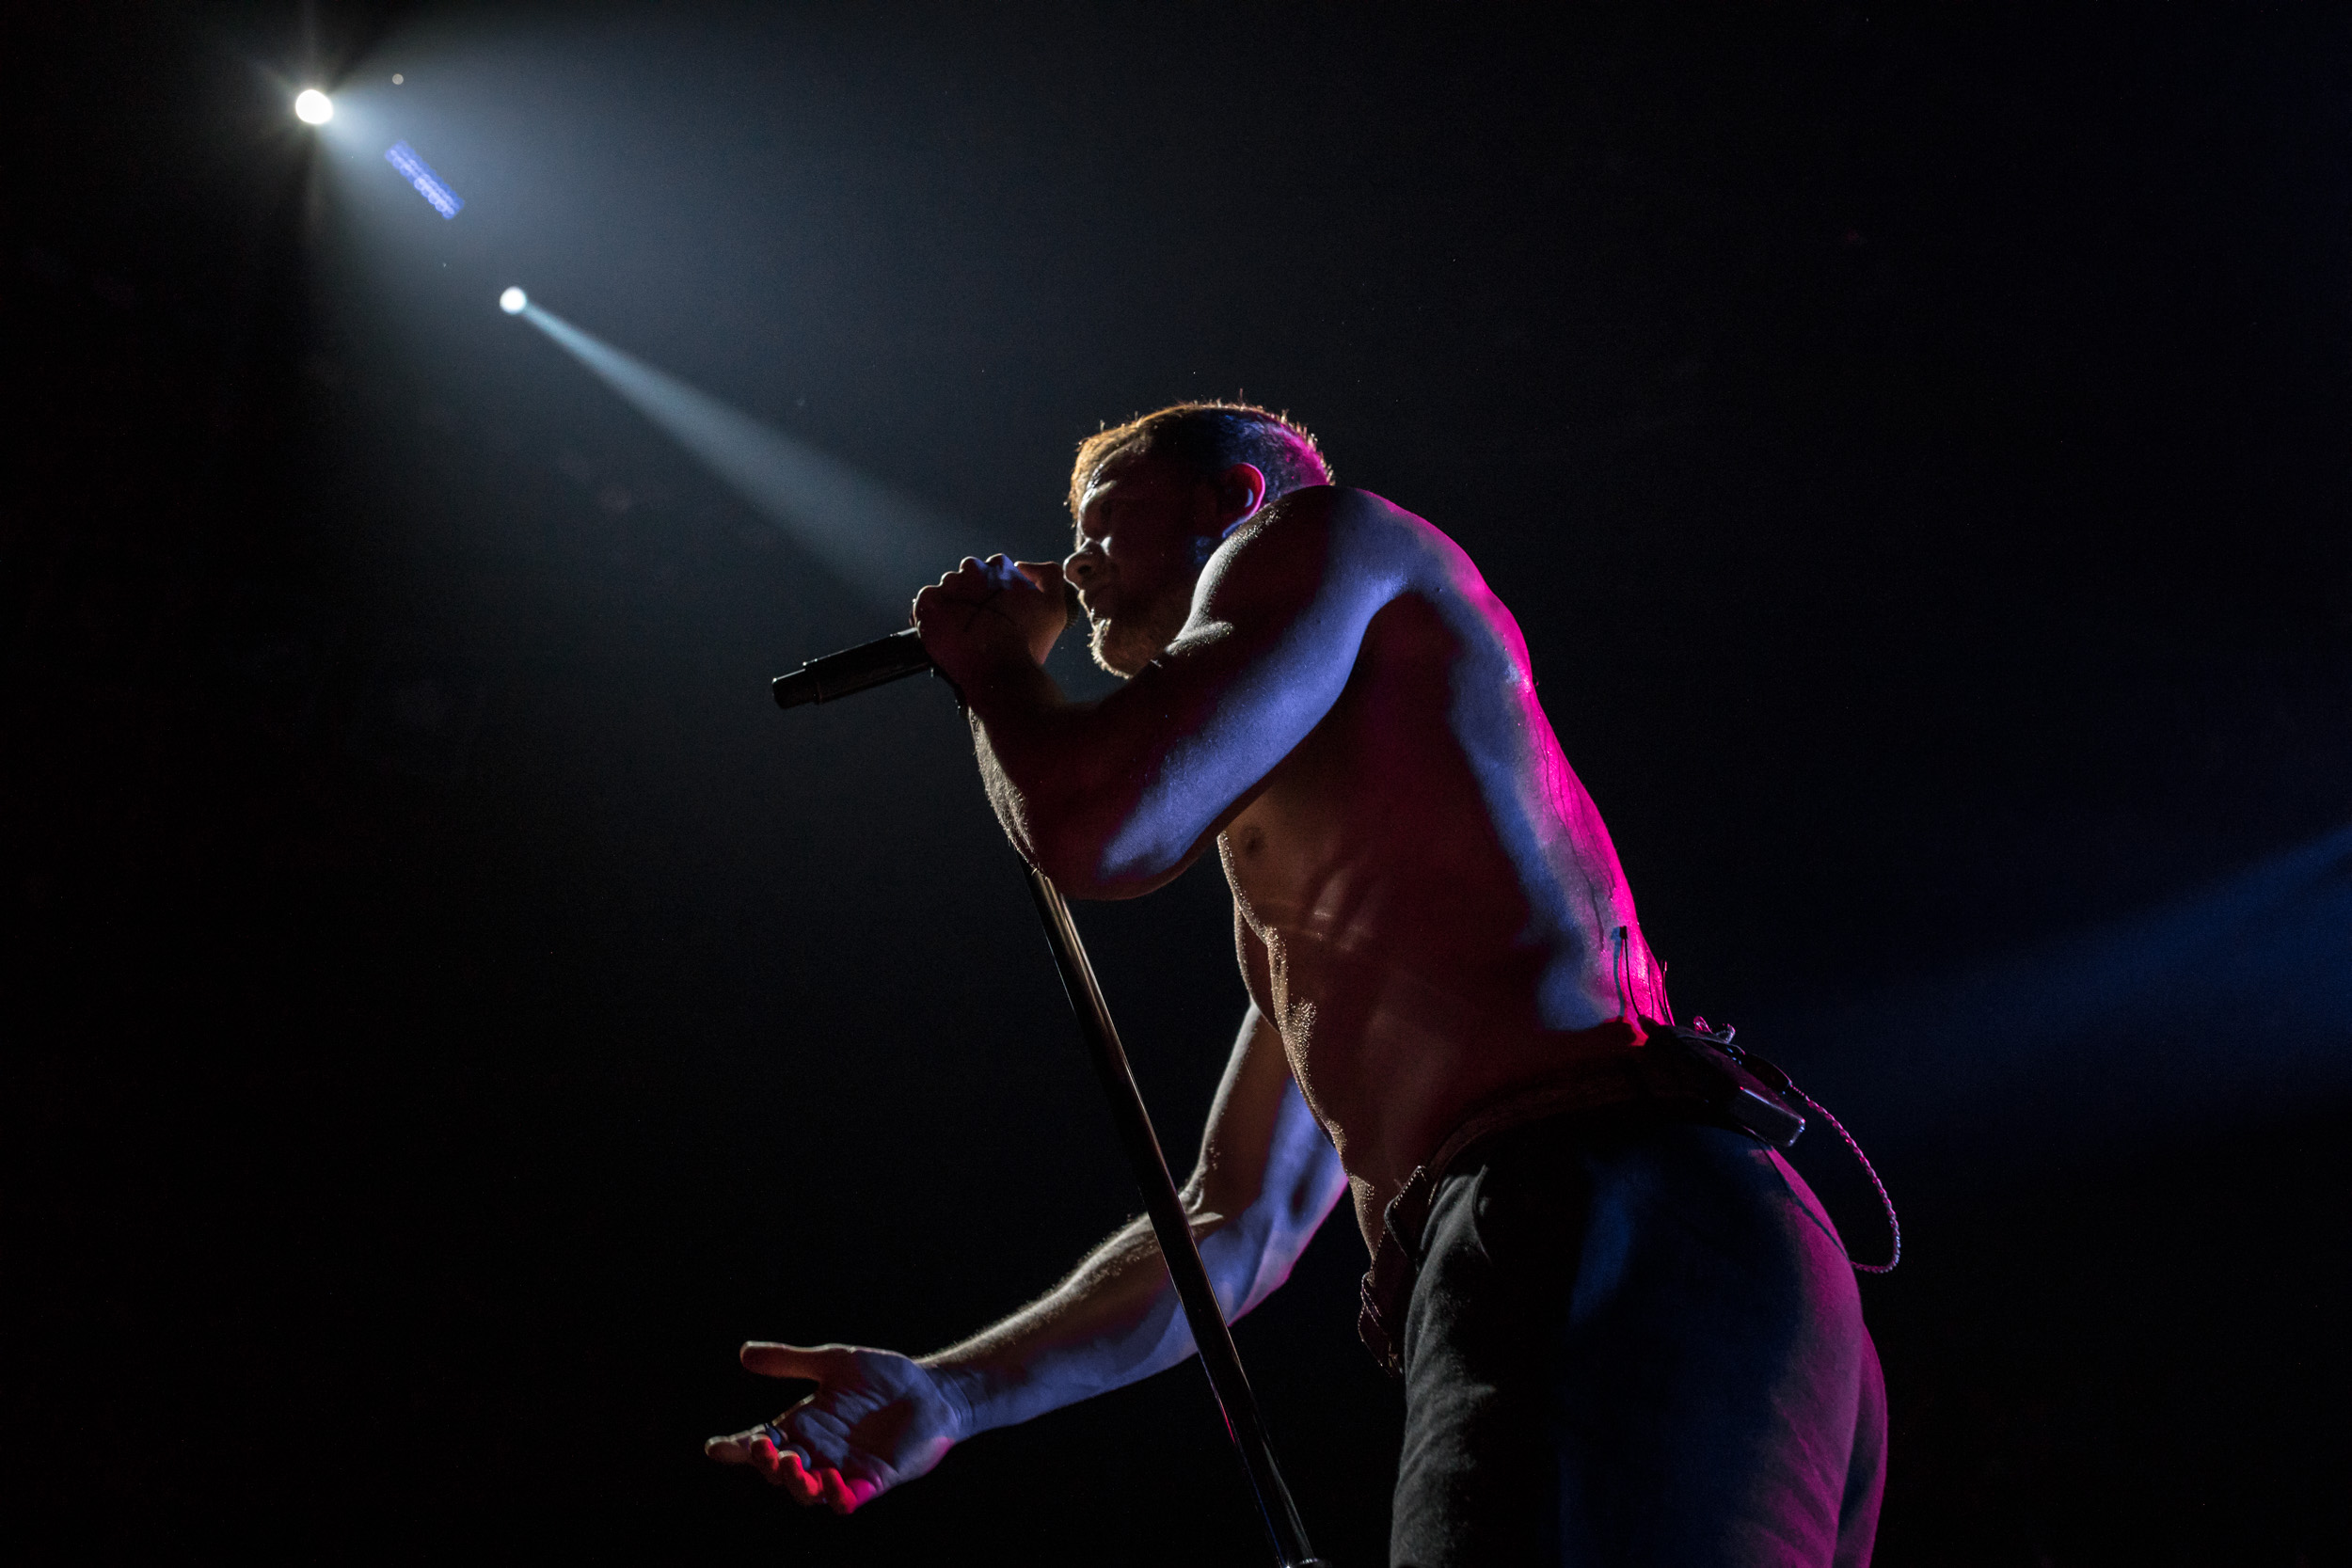 NA-07112018-Imagine Dragons-19.jpg